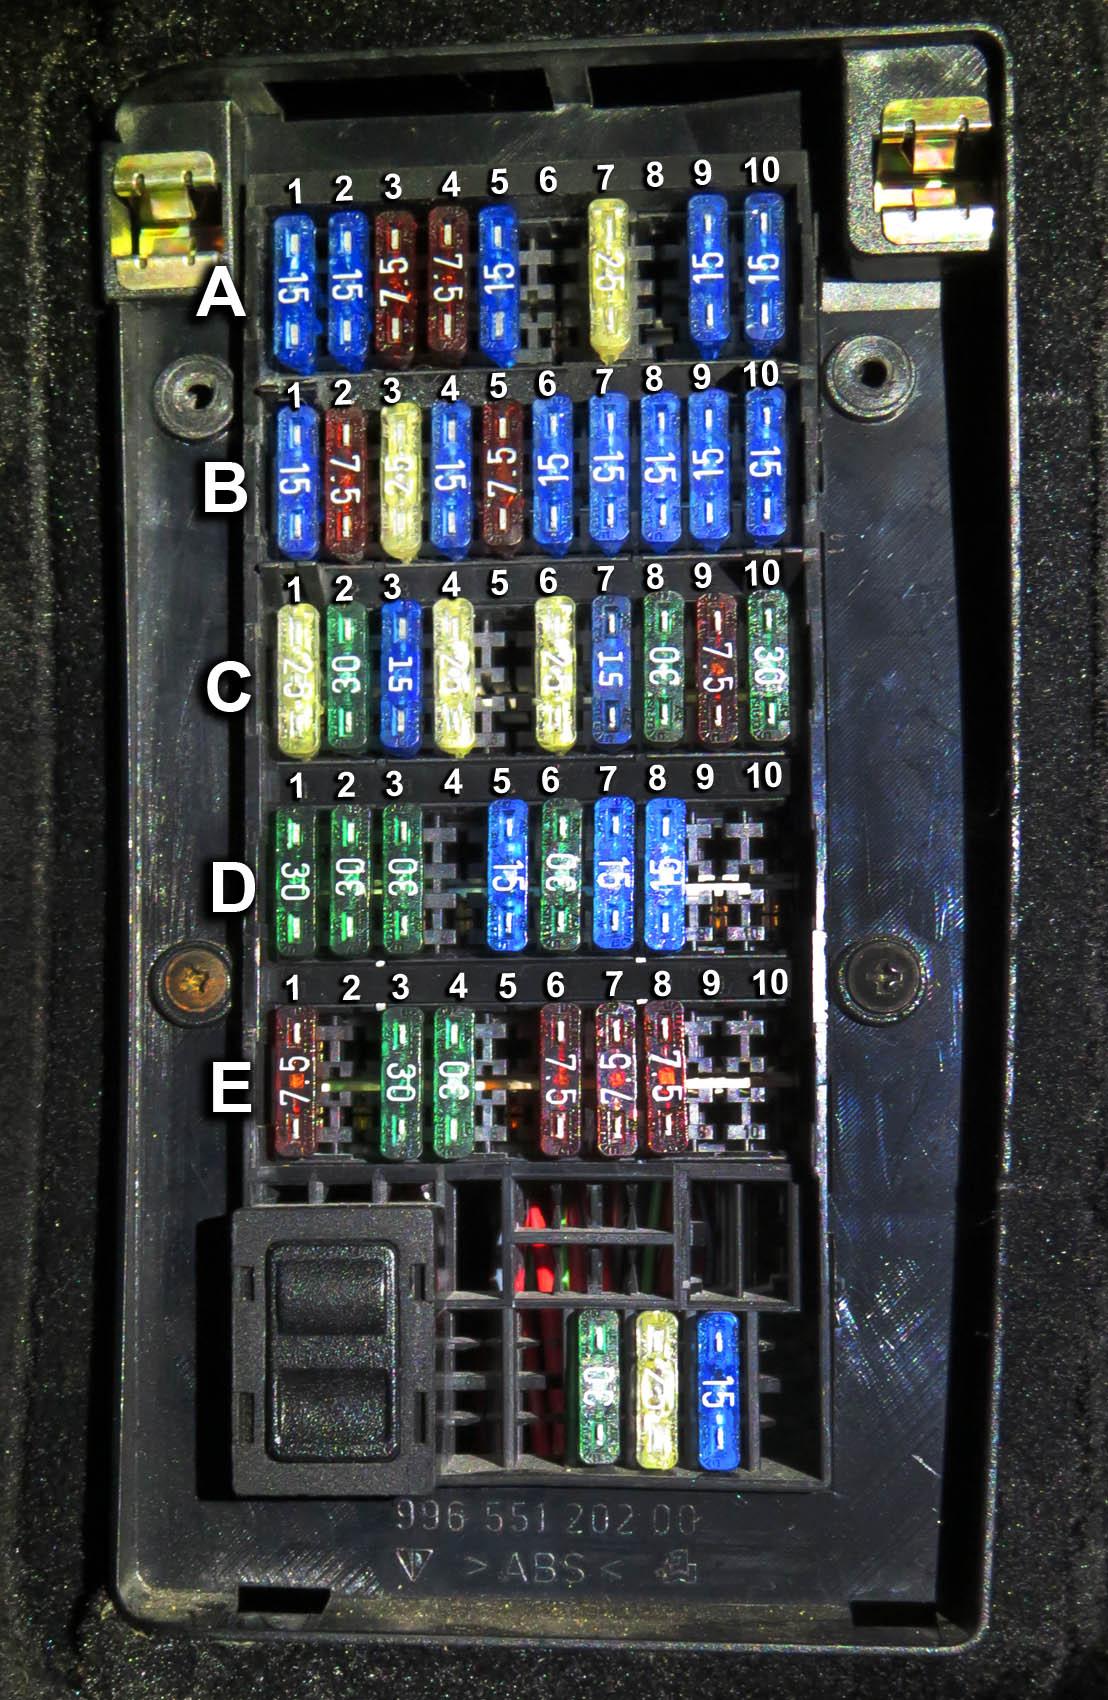 Porsche Fuse Box Location Auto Electrical Wiring Diagram Renault Clio Heater Interior Fan Blower Not Working No Power